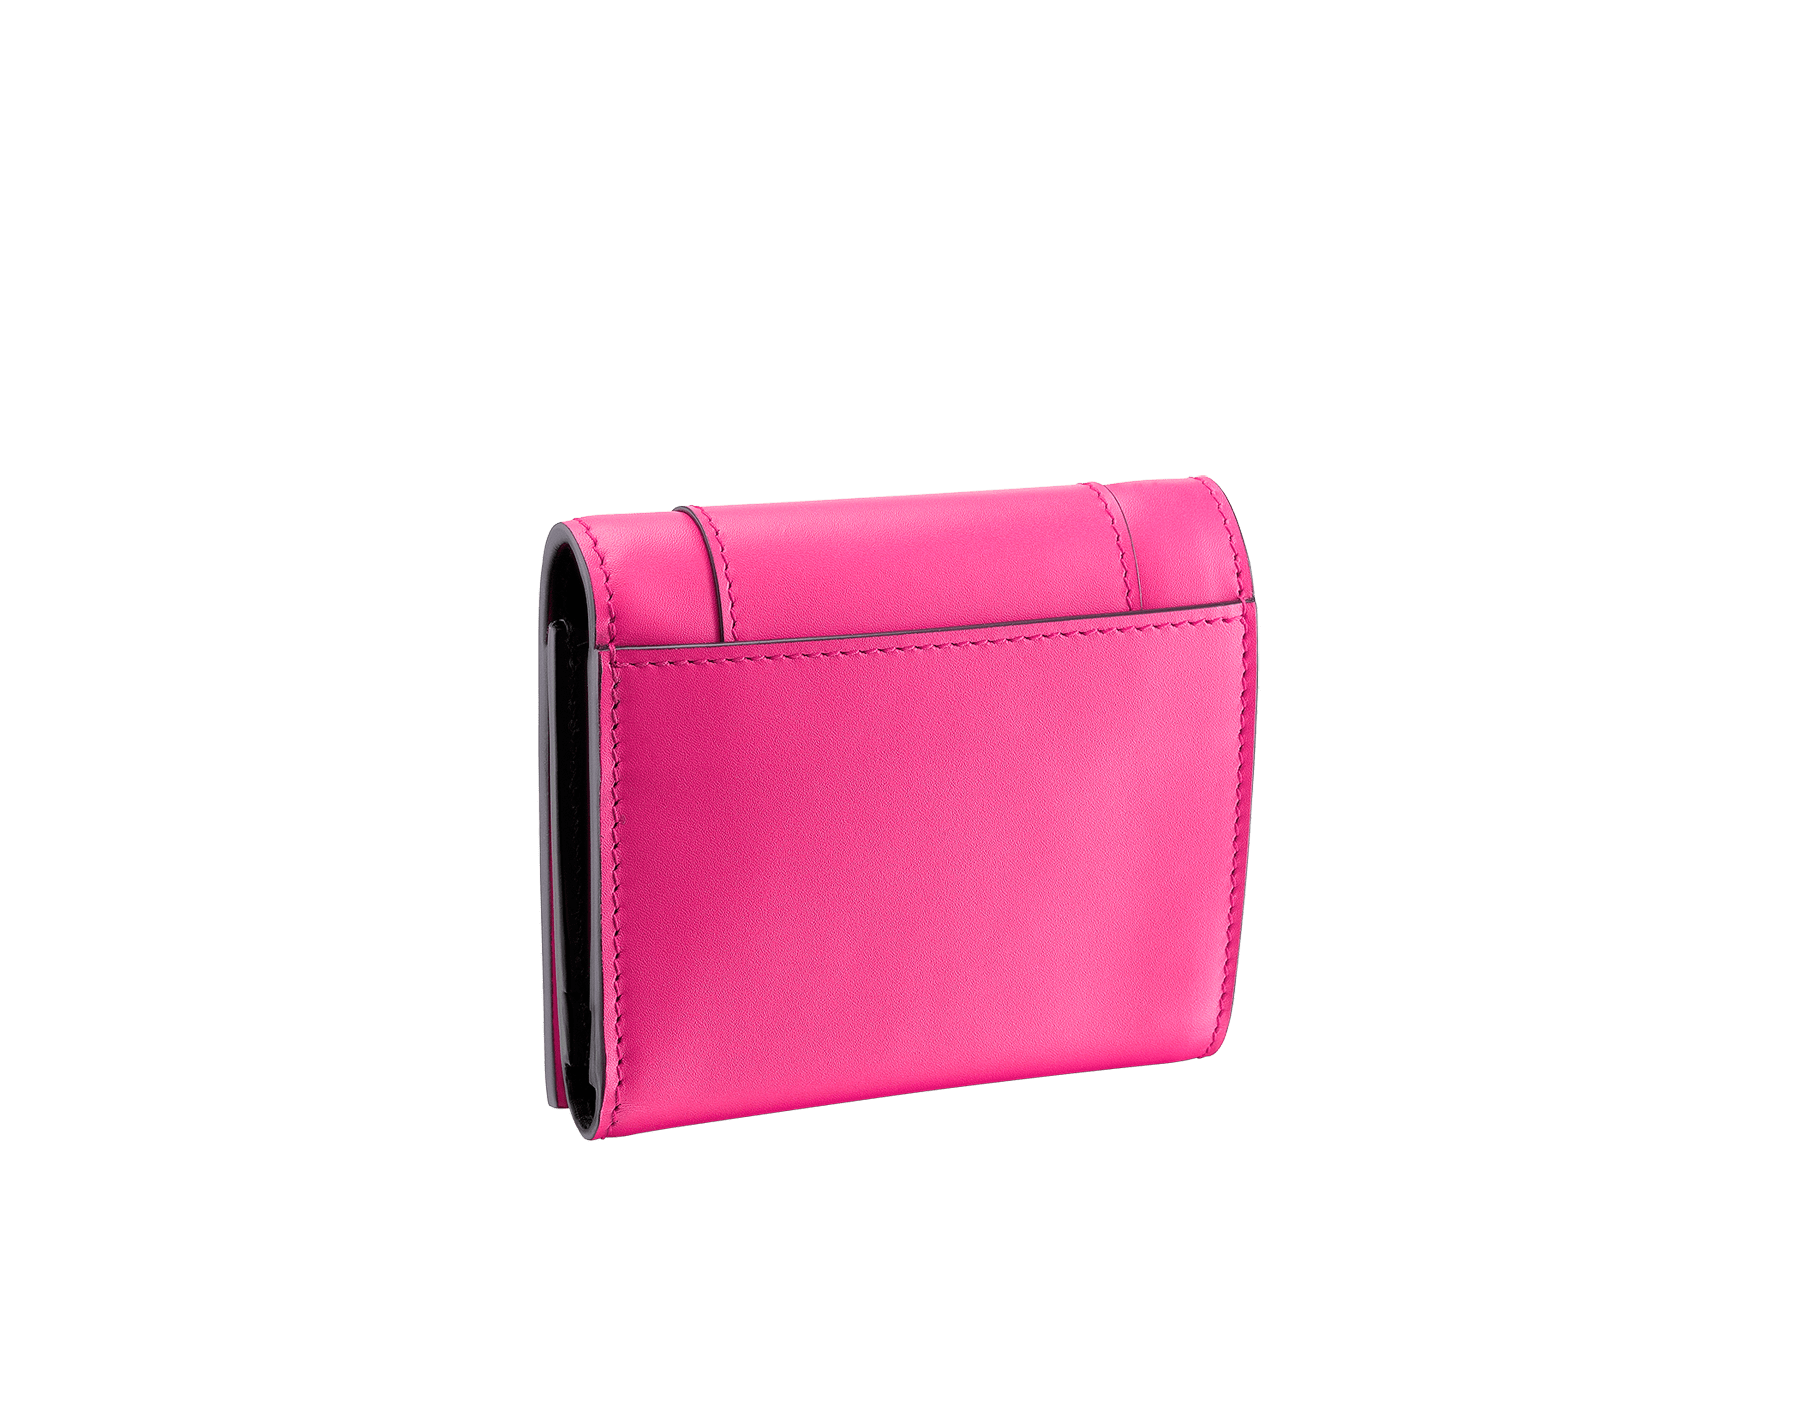 Serpenti Forever super compact wallet in Roman garnet and pink spinel calf leather. Iconic snakehead stud closure in black and white enamel with green malachite enamel eyes. SEA-SUPERCOMPACT-CLa image 3